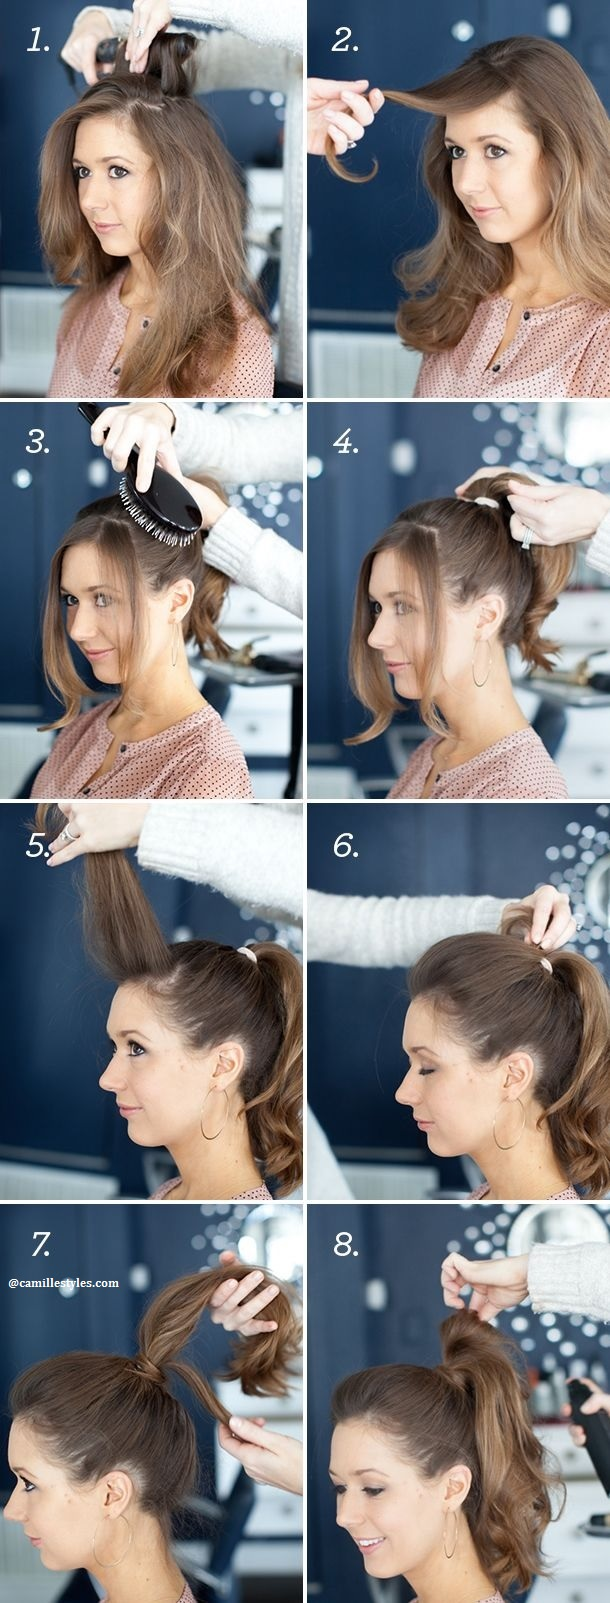 More Than 20 Hairstyle Models To Go To Work That You Can Achieve In Less Than 10 Minutes New Hairstyle Trends